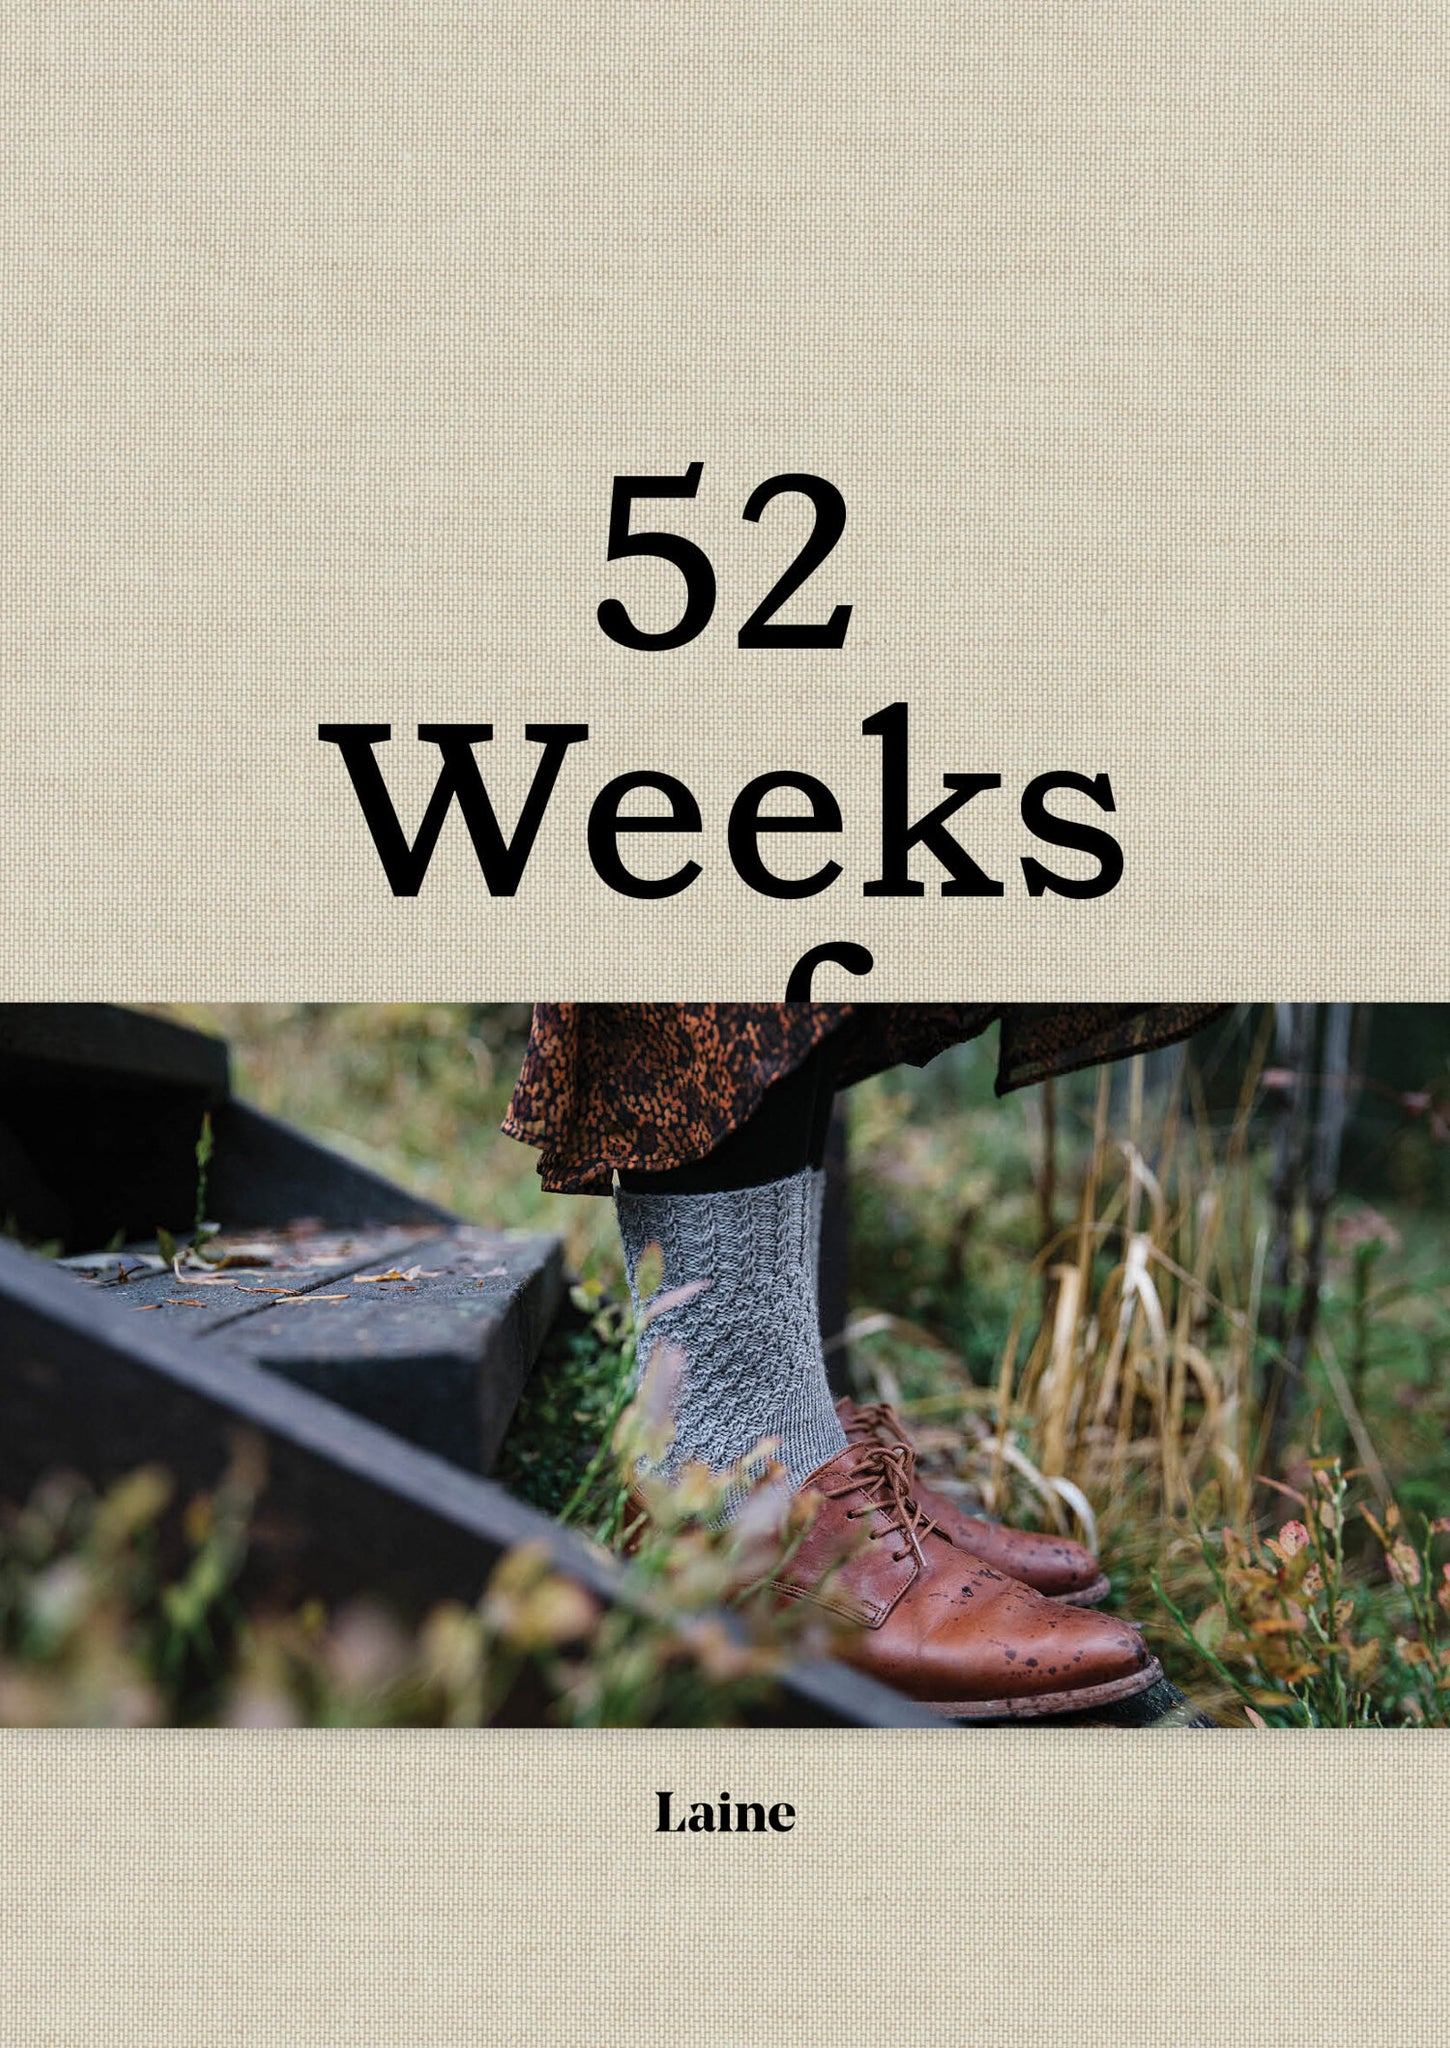 52 Weeks of Socks - Laine - Farm to Cable Yarns